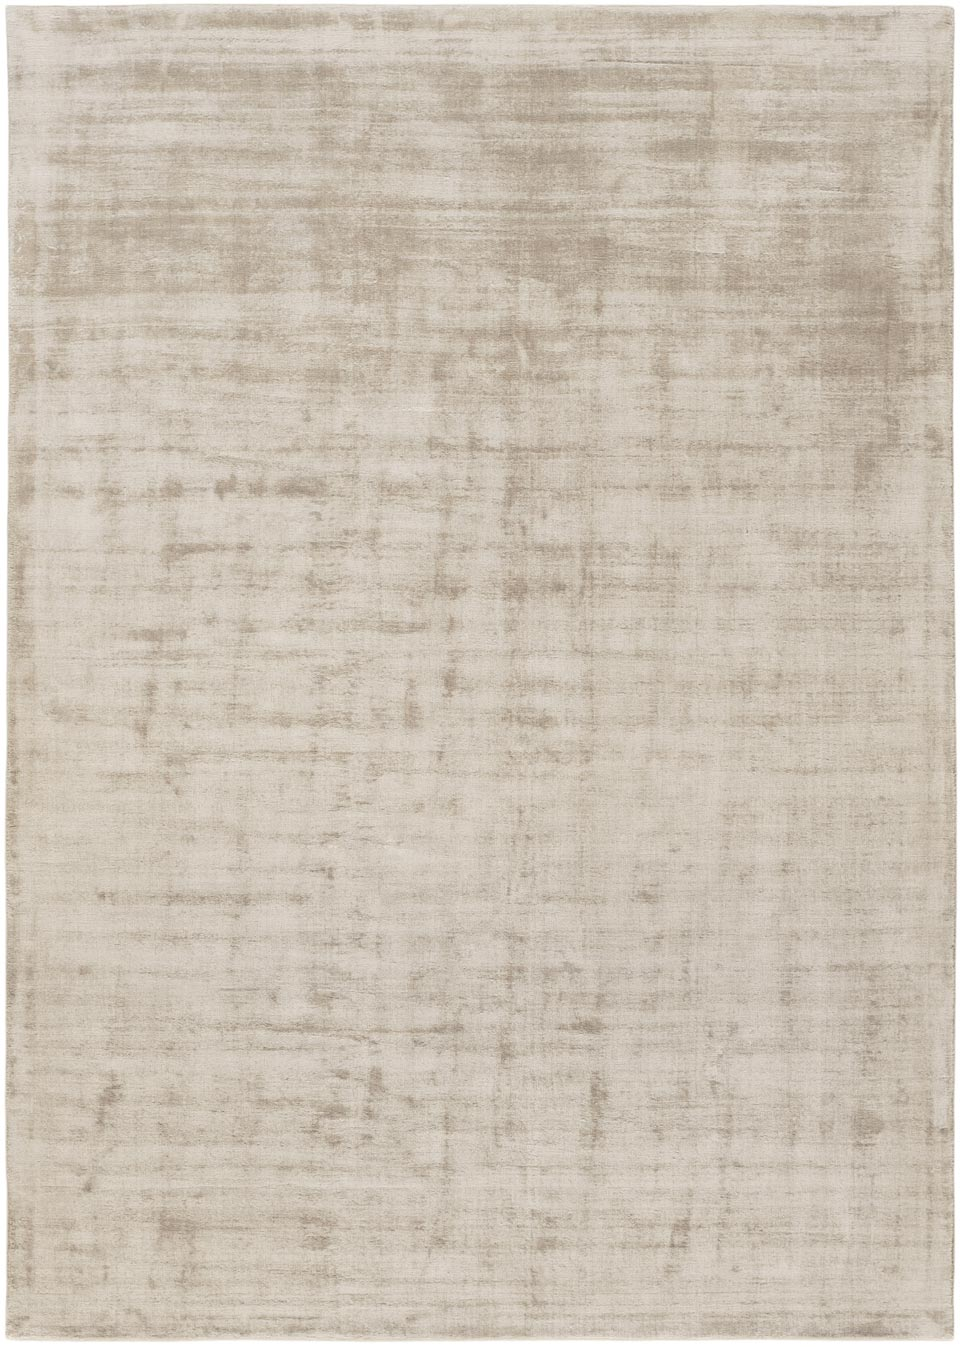 Tapis de salon sable 170x240cm. Toulemonde Bochart.